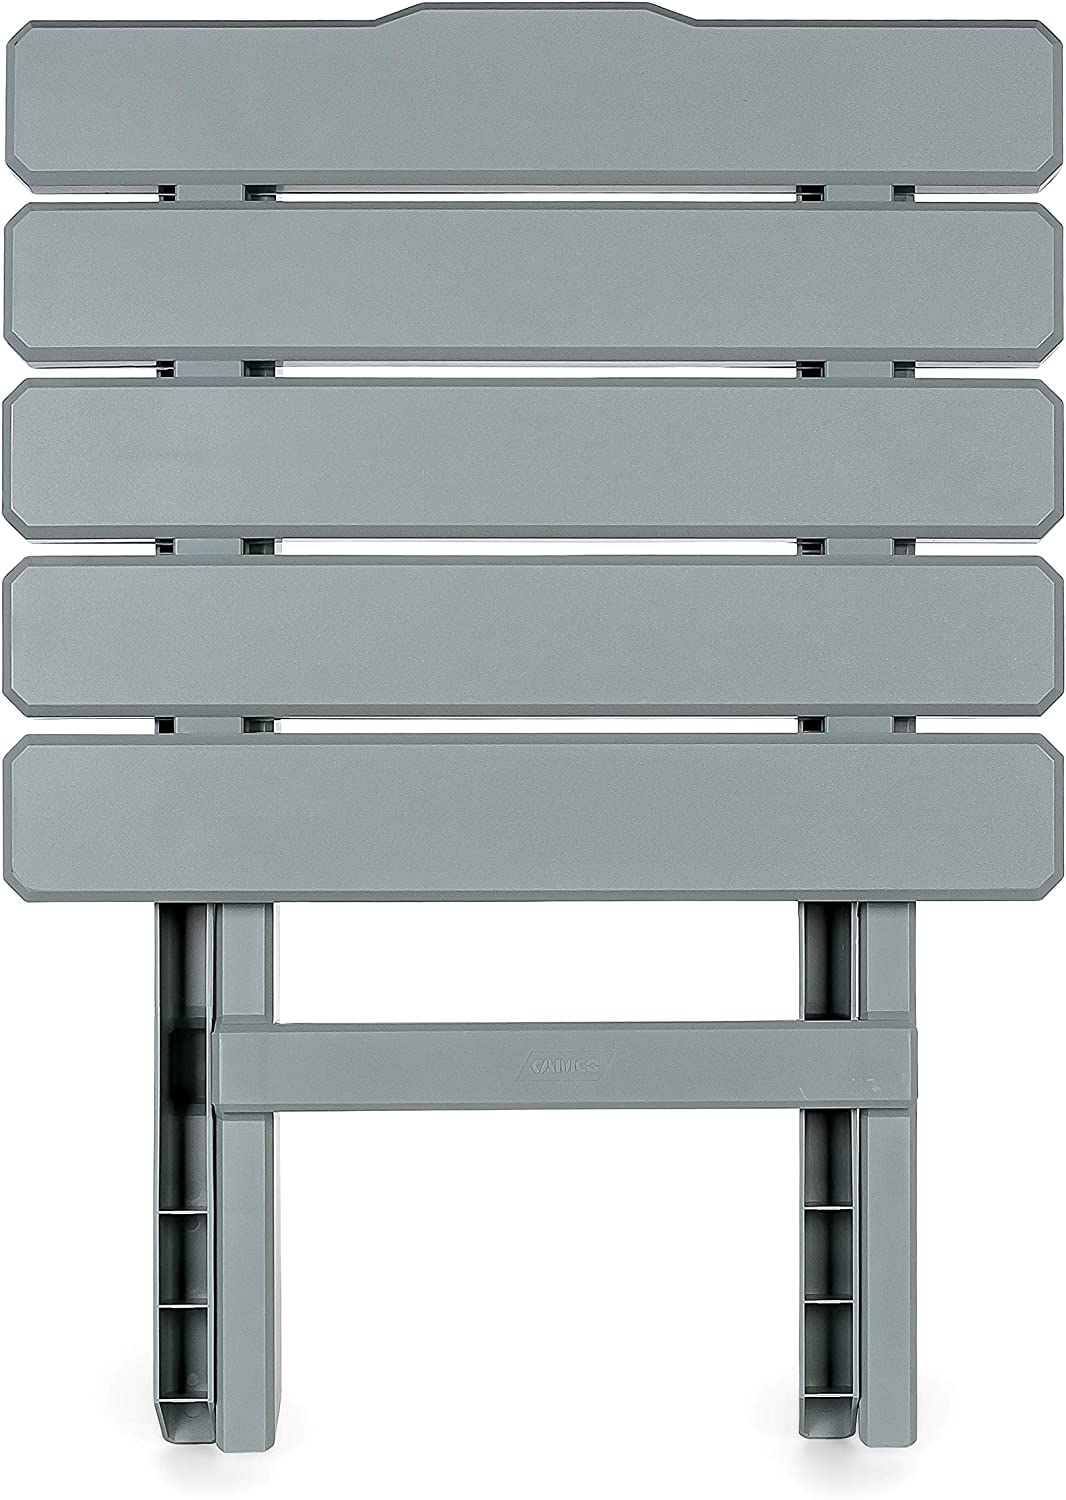 Weatherproof and Rust Resistant Picnics Perfect For The Beach Cookouts and More Camco 51682 Gray Regular Adirondack Portable Outdoor Folding Side Table Camping